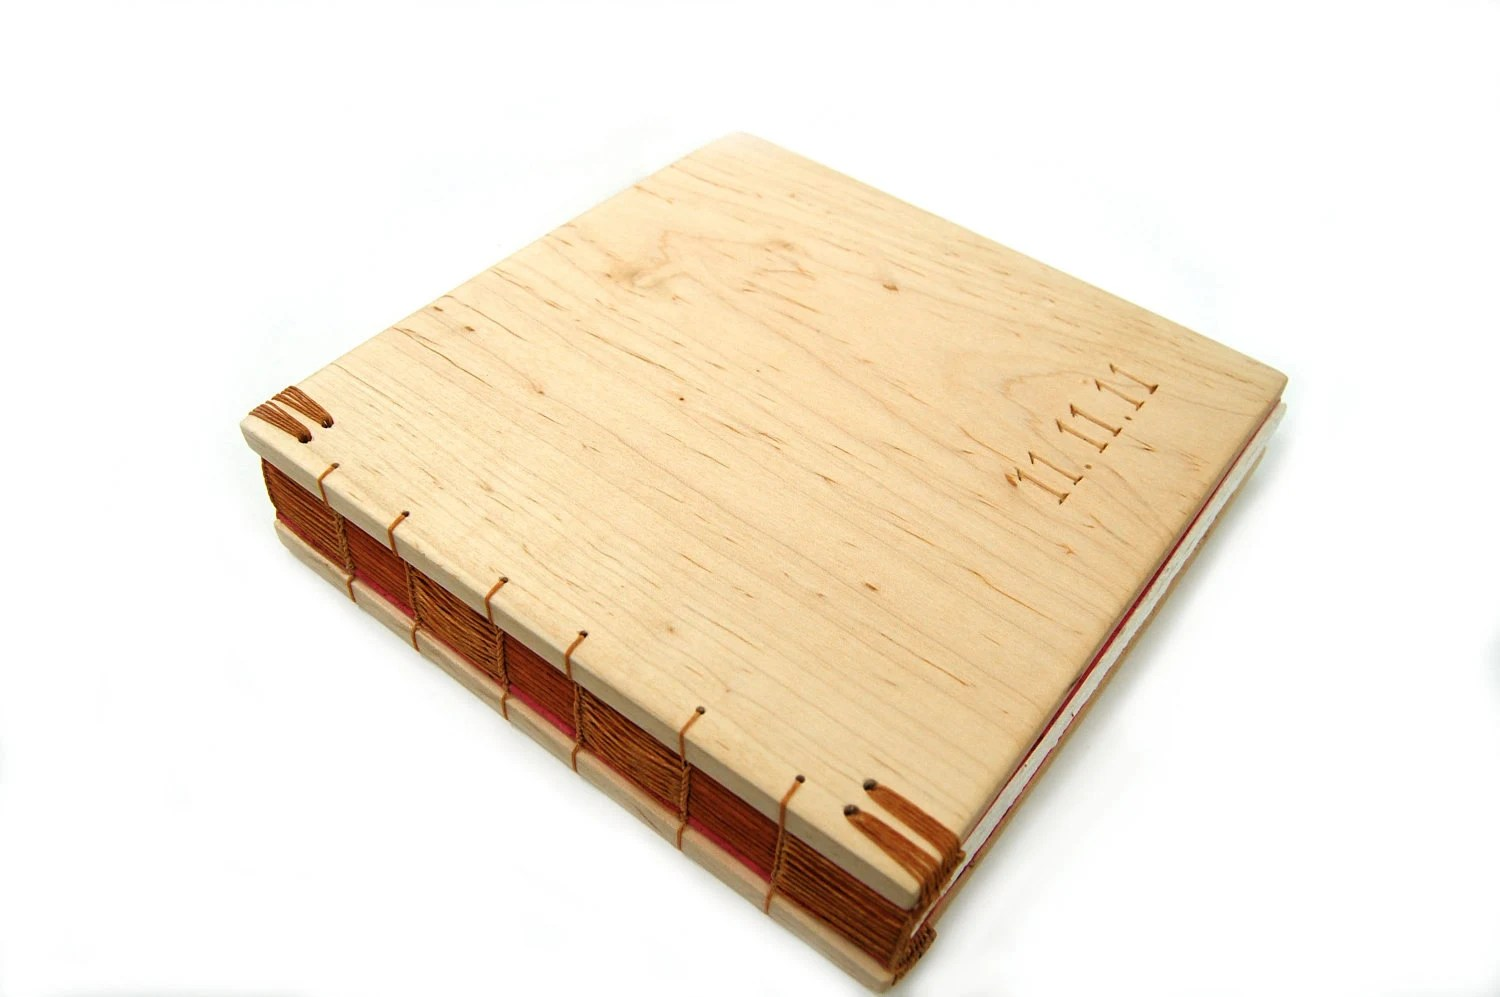 custom wedding guest book with carved wood covers - personalized rustic natural earth tone - ThreeTreesBindery